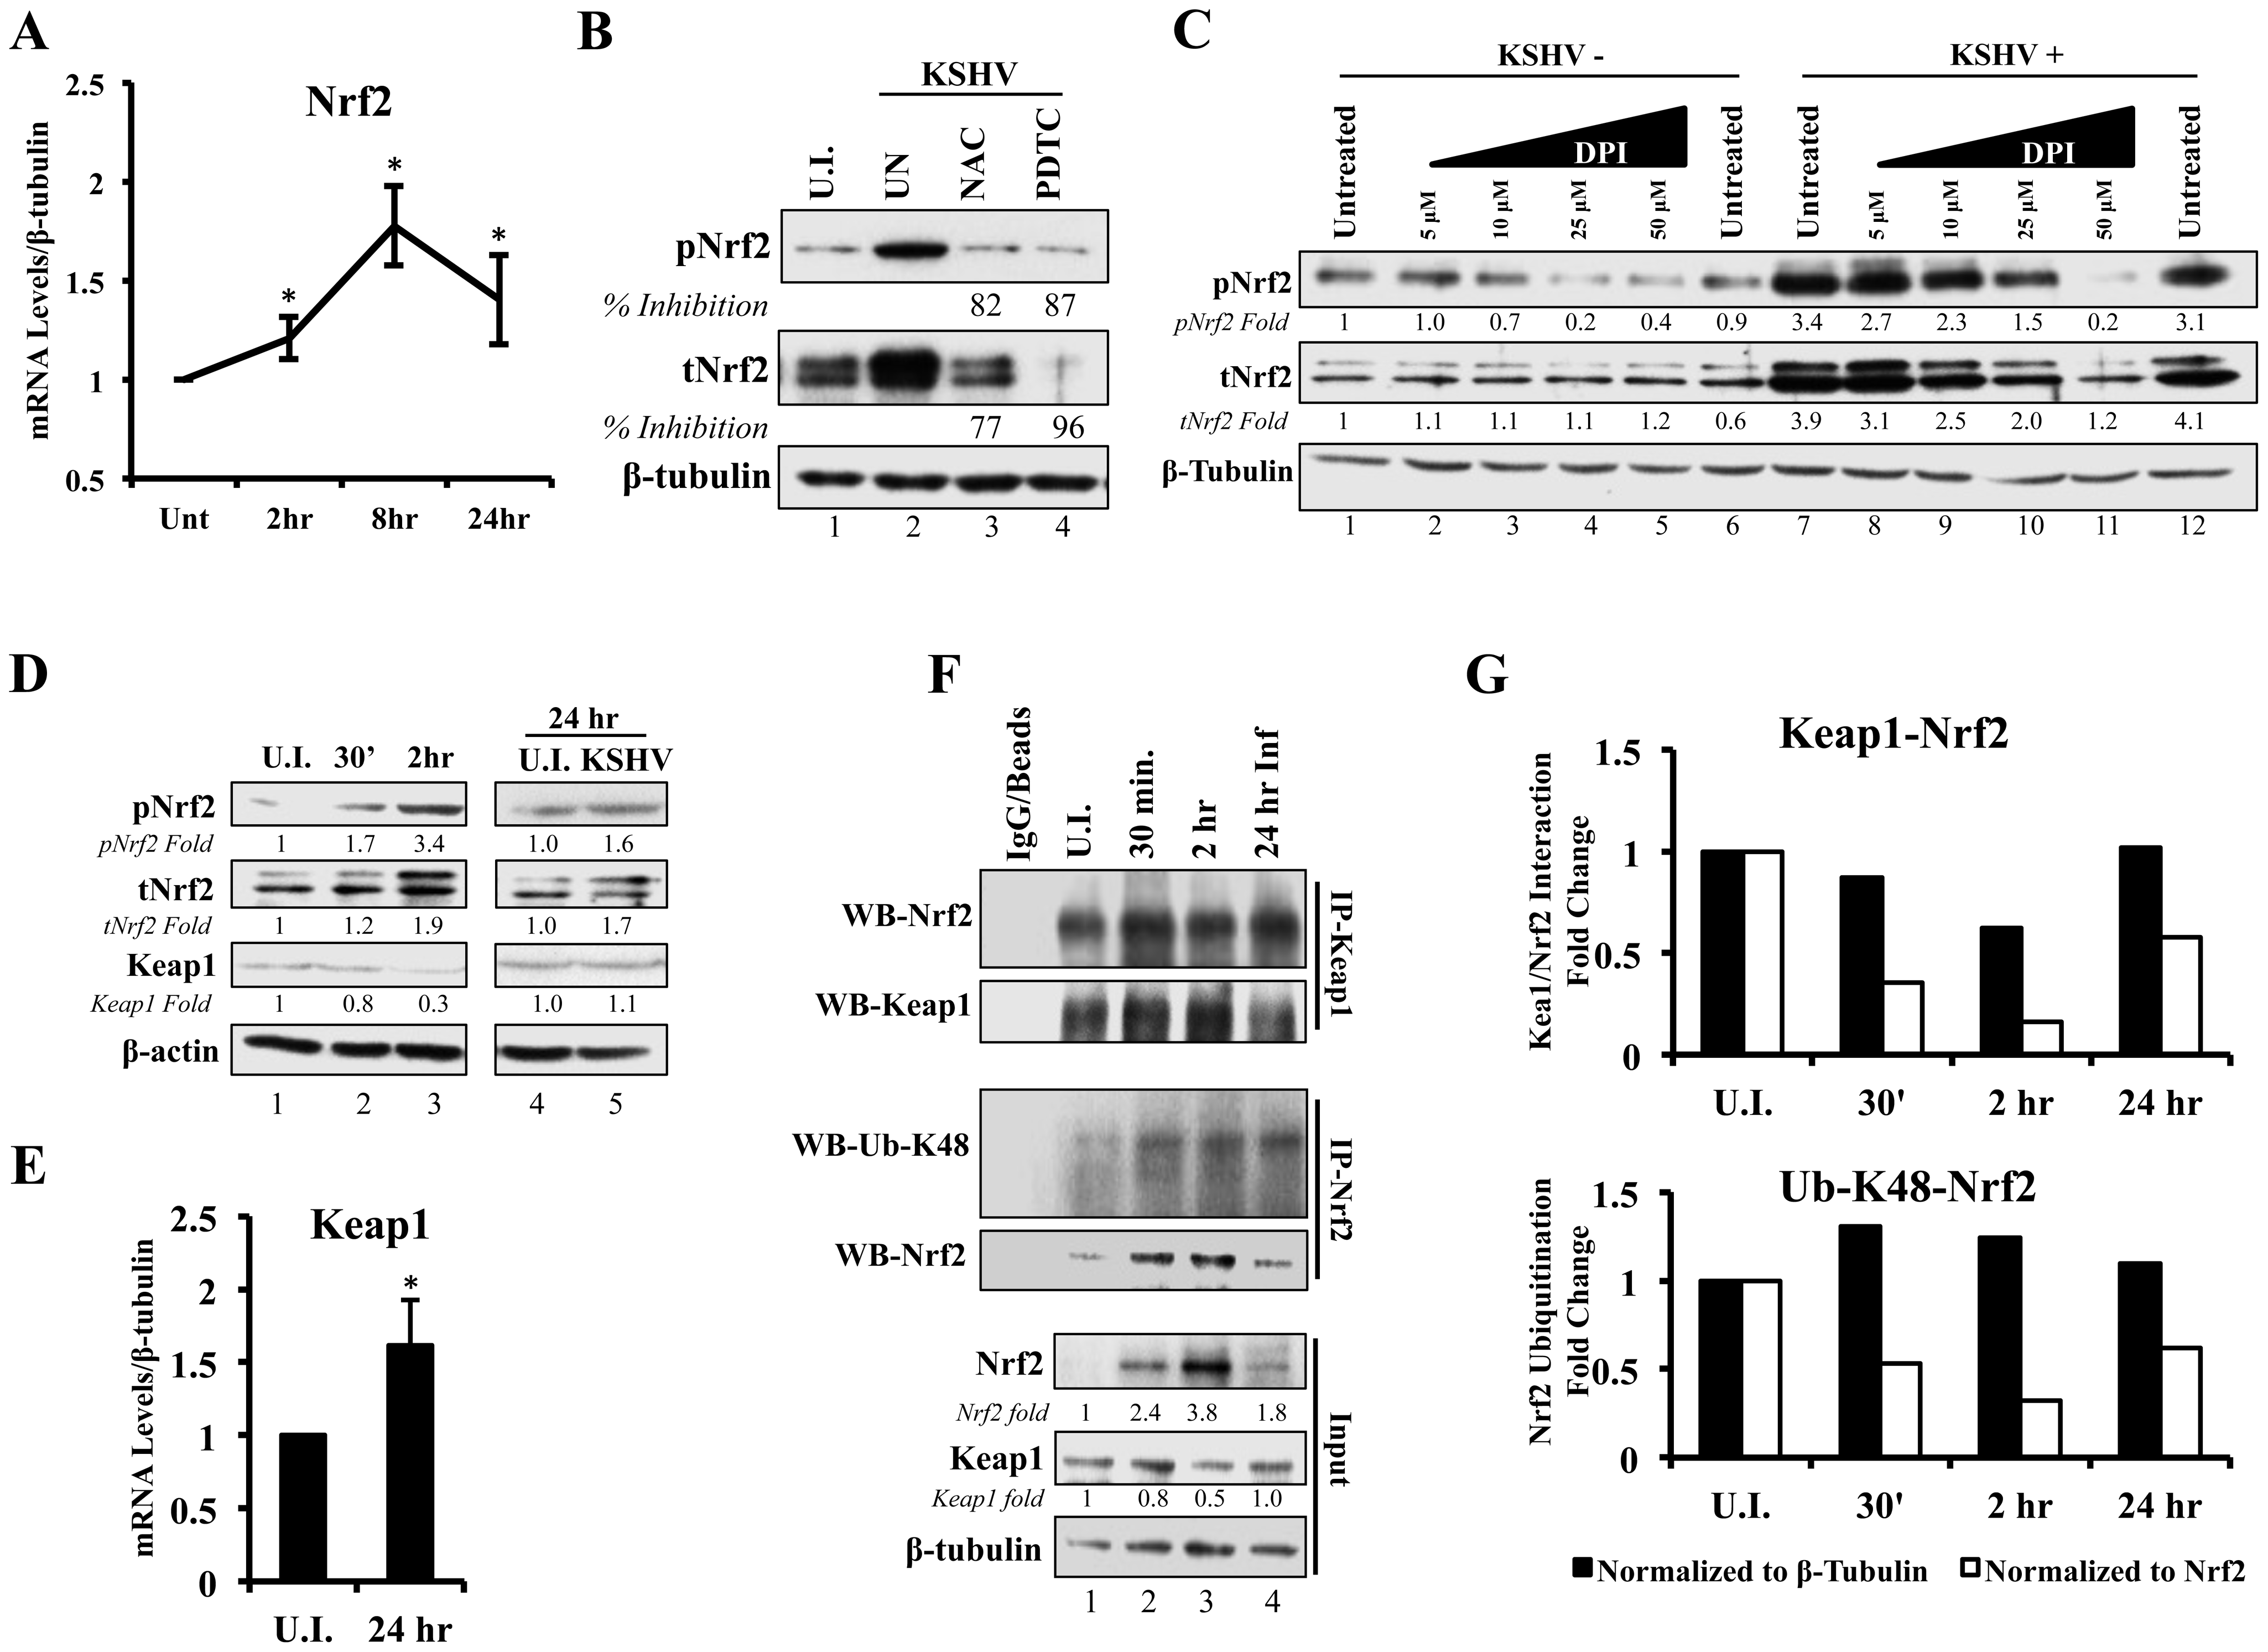 Effect of KSHV ROS induction on Nrf2-Keap1 interaction and Nrf2 ubiquitination.